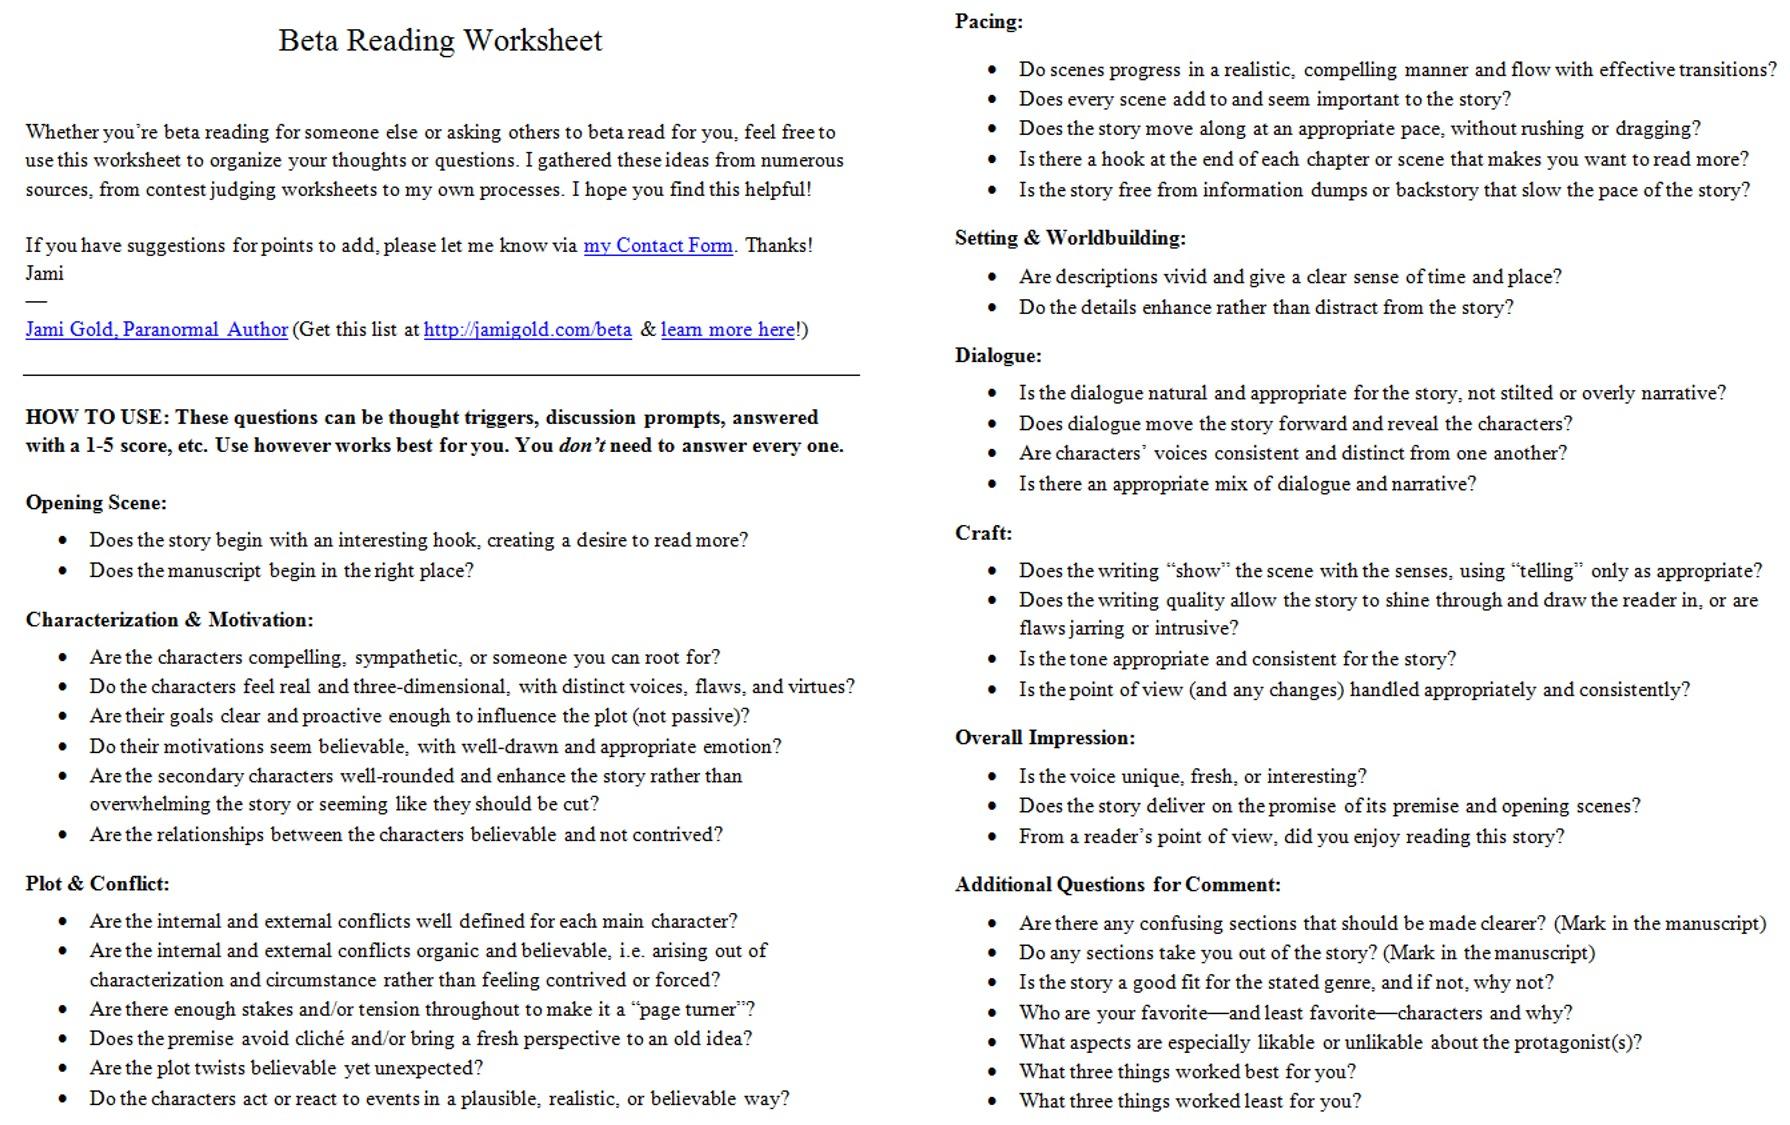 Weirdmailus  Marvelous Worksheets For Writers  Jami Gold Paranormal Author With Hot Screen Shot Of The Twopage Beta Reading Worksheet With Agreeable Parts Of Plants Worksheets Also Sqr Worksheet In Addition Academic Goal Setting Worksheet And Merge Worksheets As Well As Preamble Scramble Worksheet Additionally Nonfiction Worksheet From Jamigoldcom With Weirdmailus  Hot Worksheets For Writers  Jami Gold Paranormal Author With Agreeable Screen Shot Of The Twopage Beta Reading Worksheet And Marvelous Parts Of Plants Worksheets Also Sqr Worksheet In Addition Academic Goal Setting Worksheet From Jamigoldcom